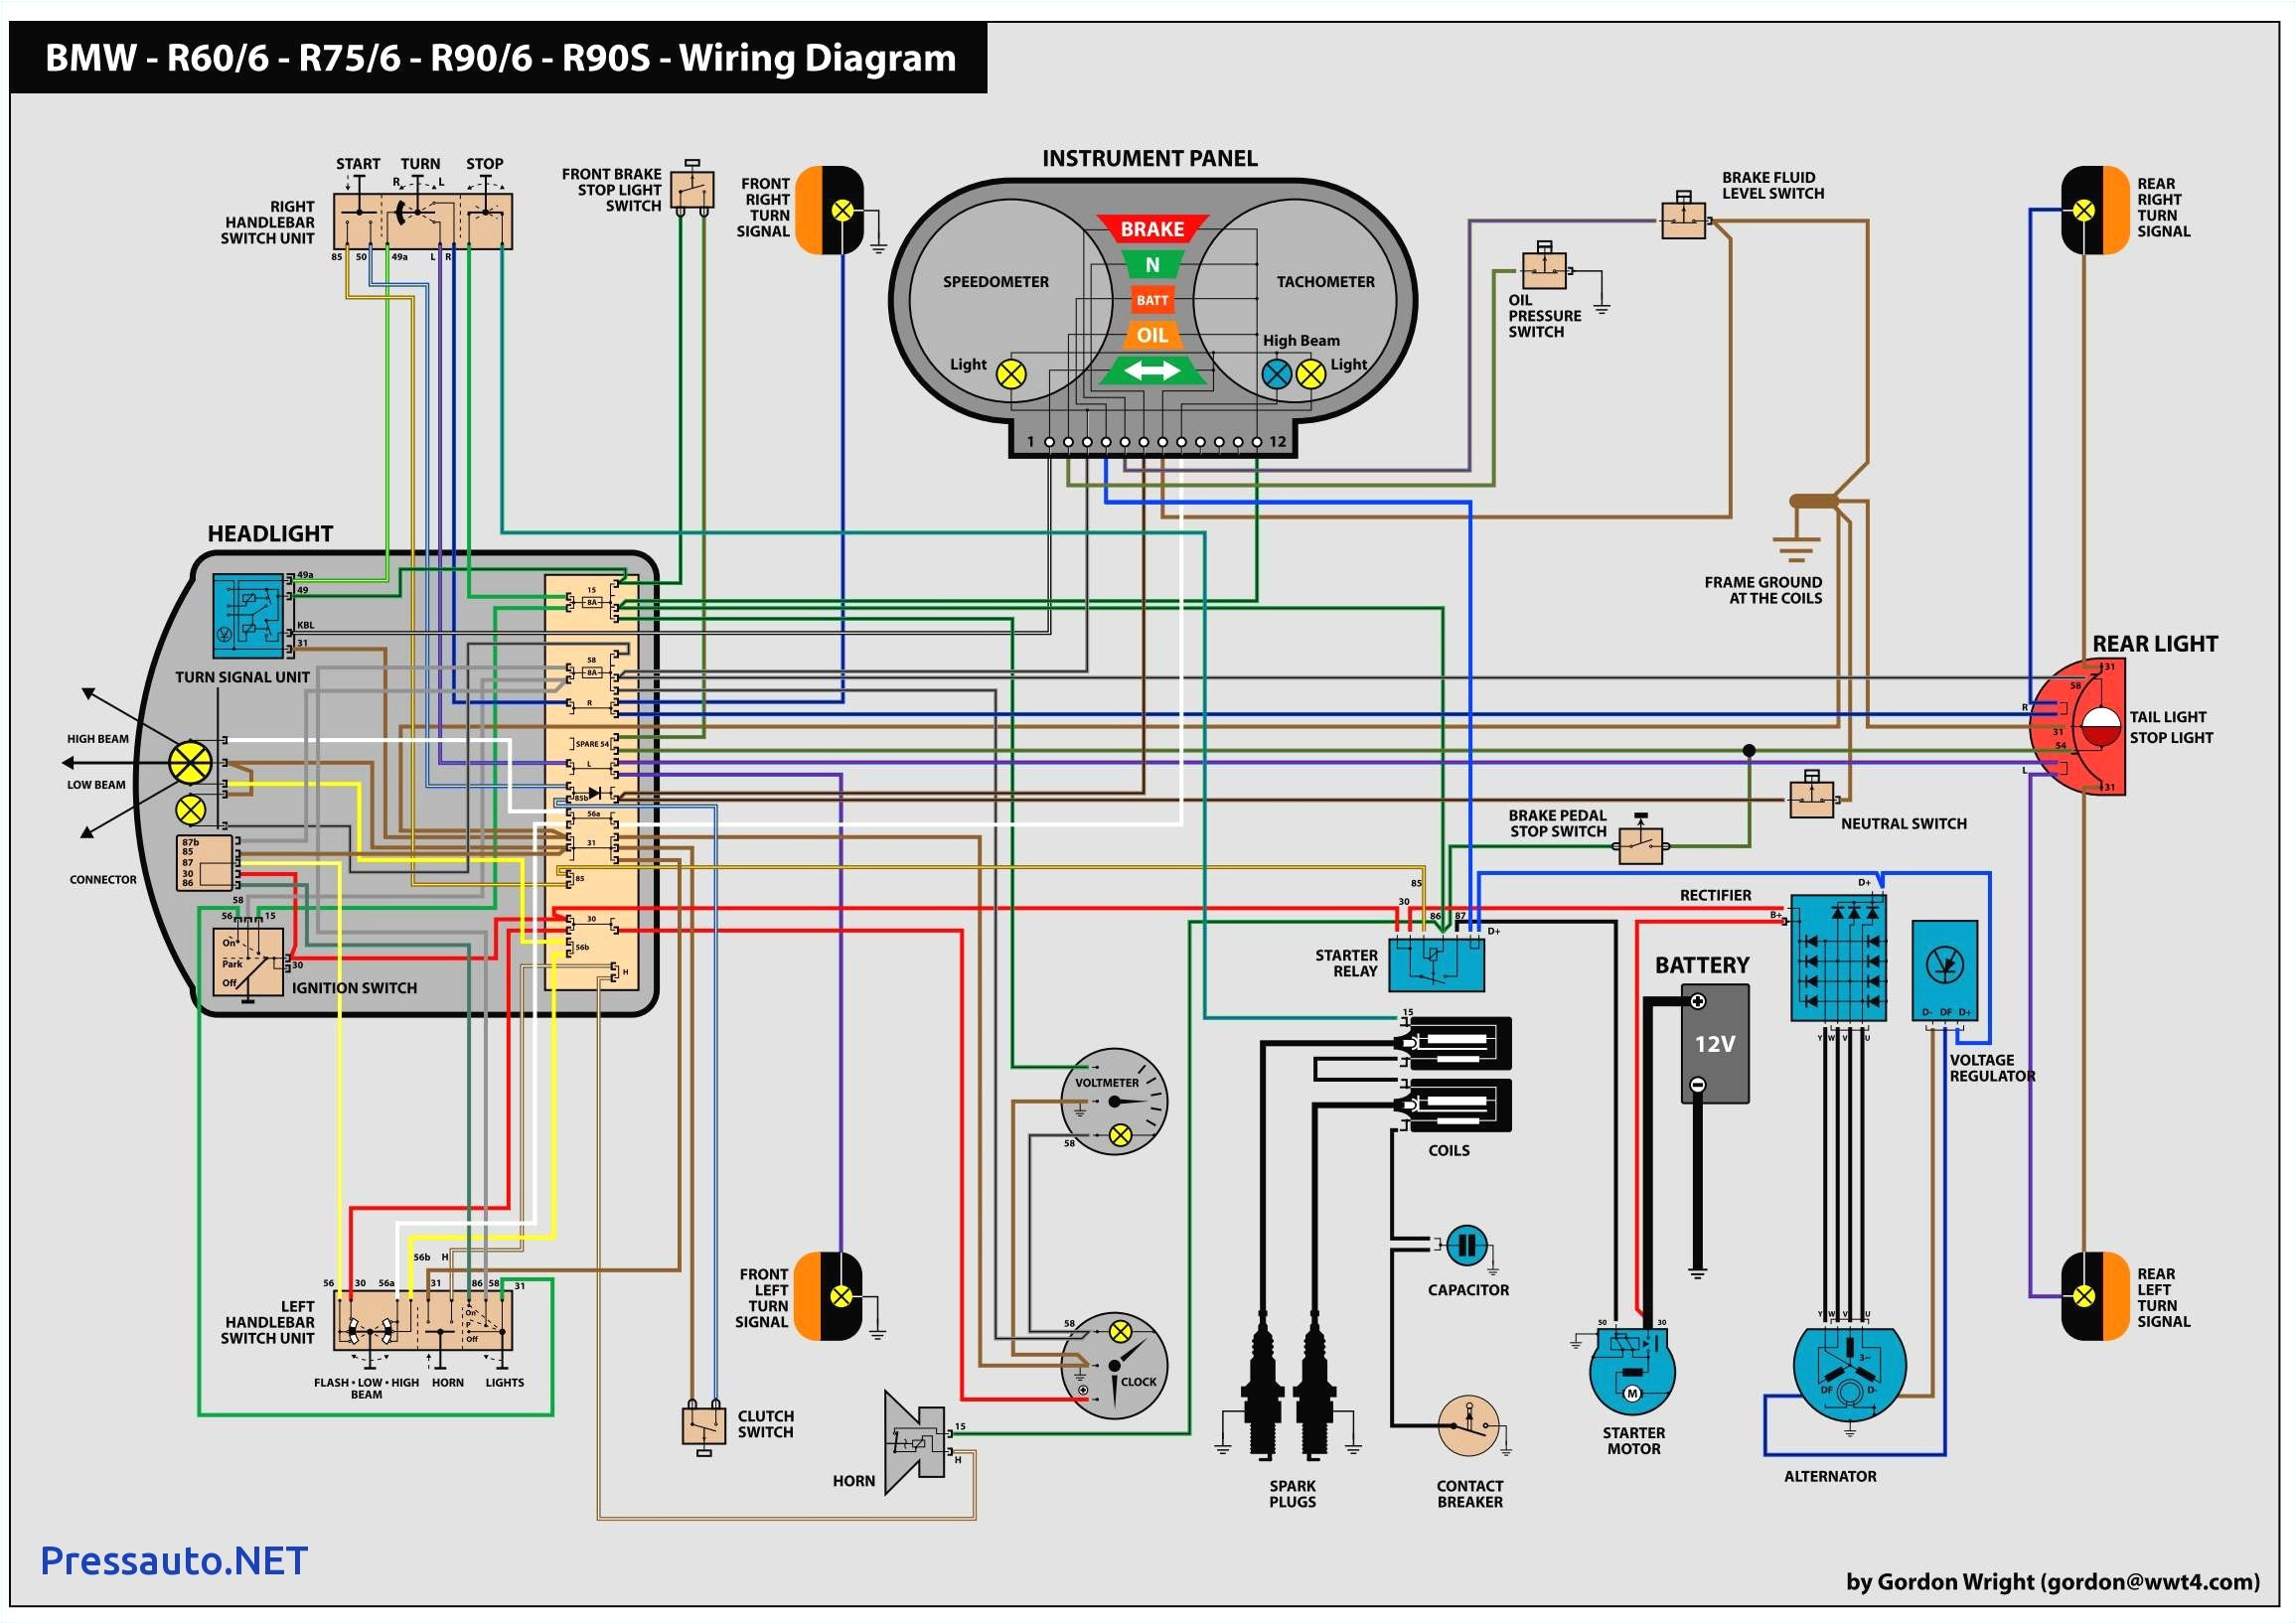 bmw wiring diagrams wiring diagram show wds bmw wiring diagram system free download bmw wire diagram